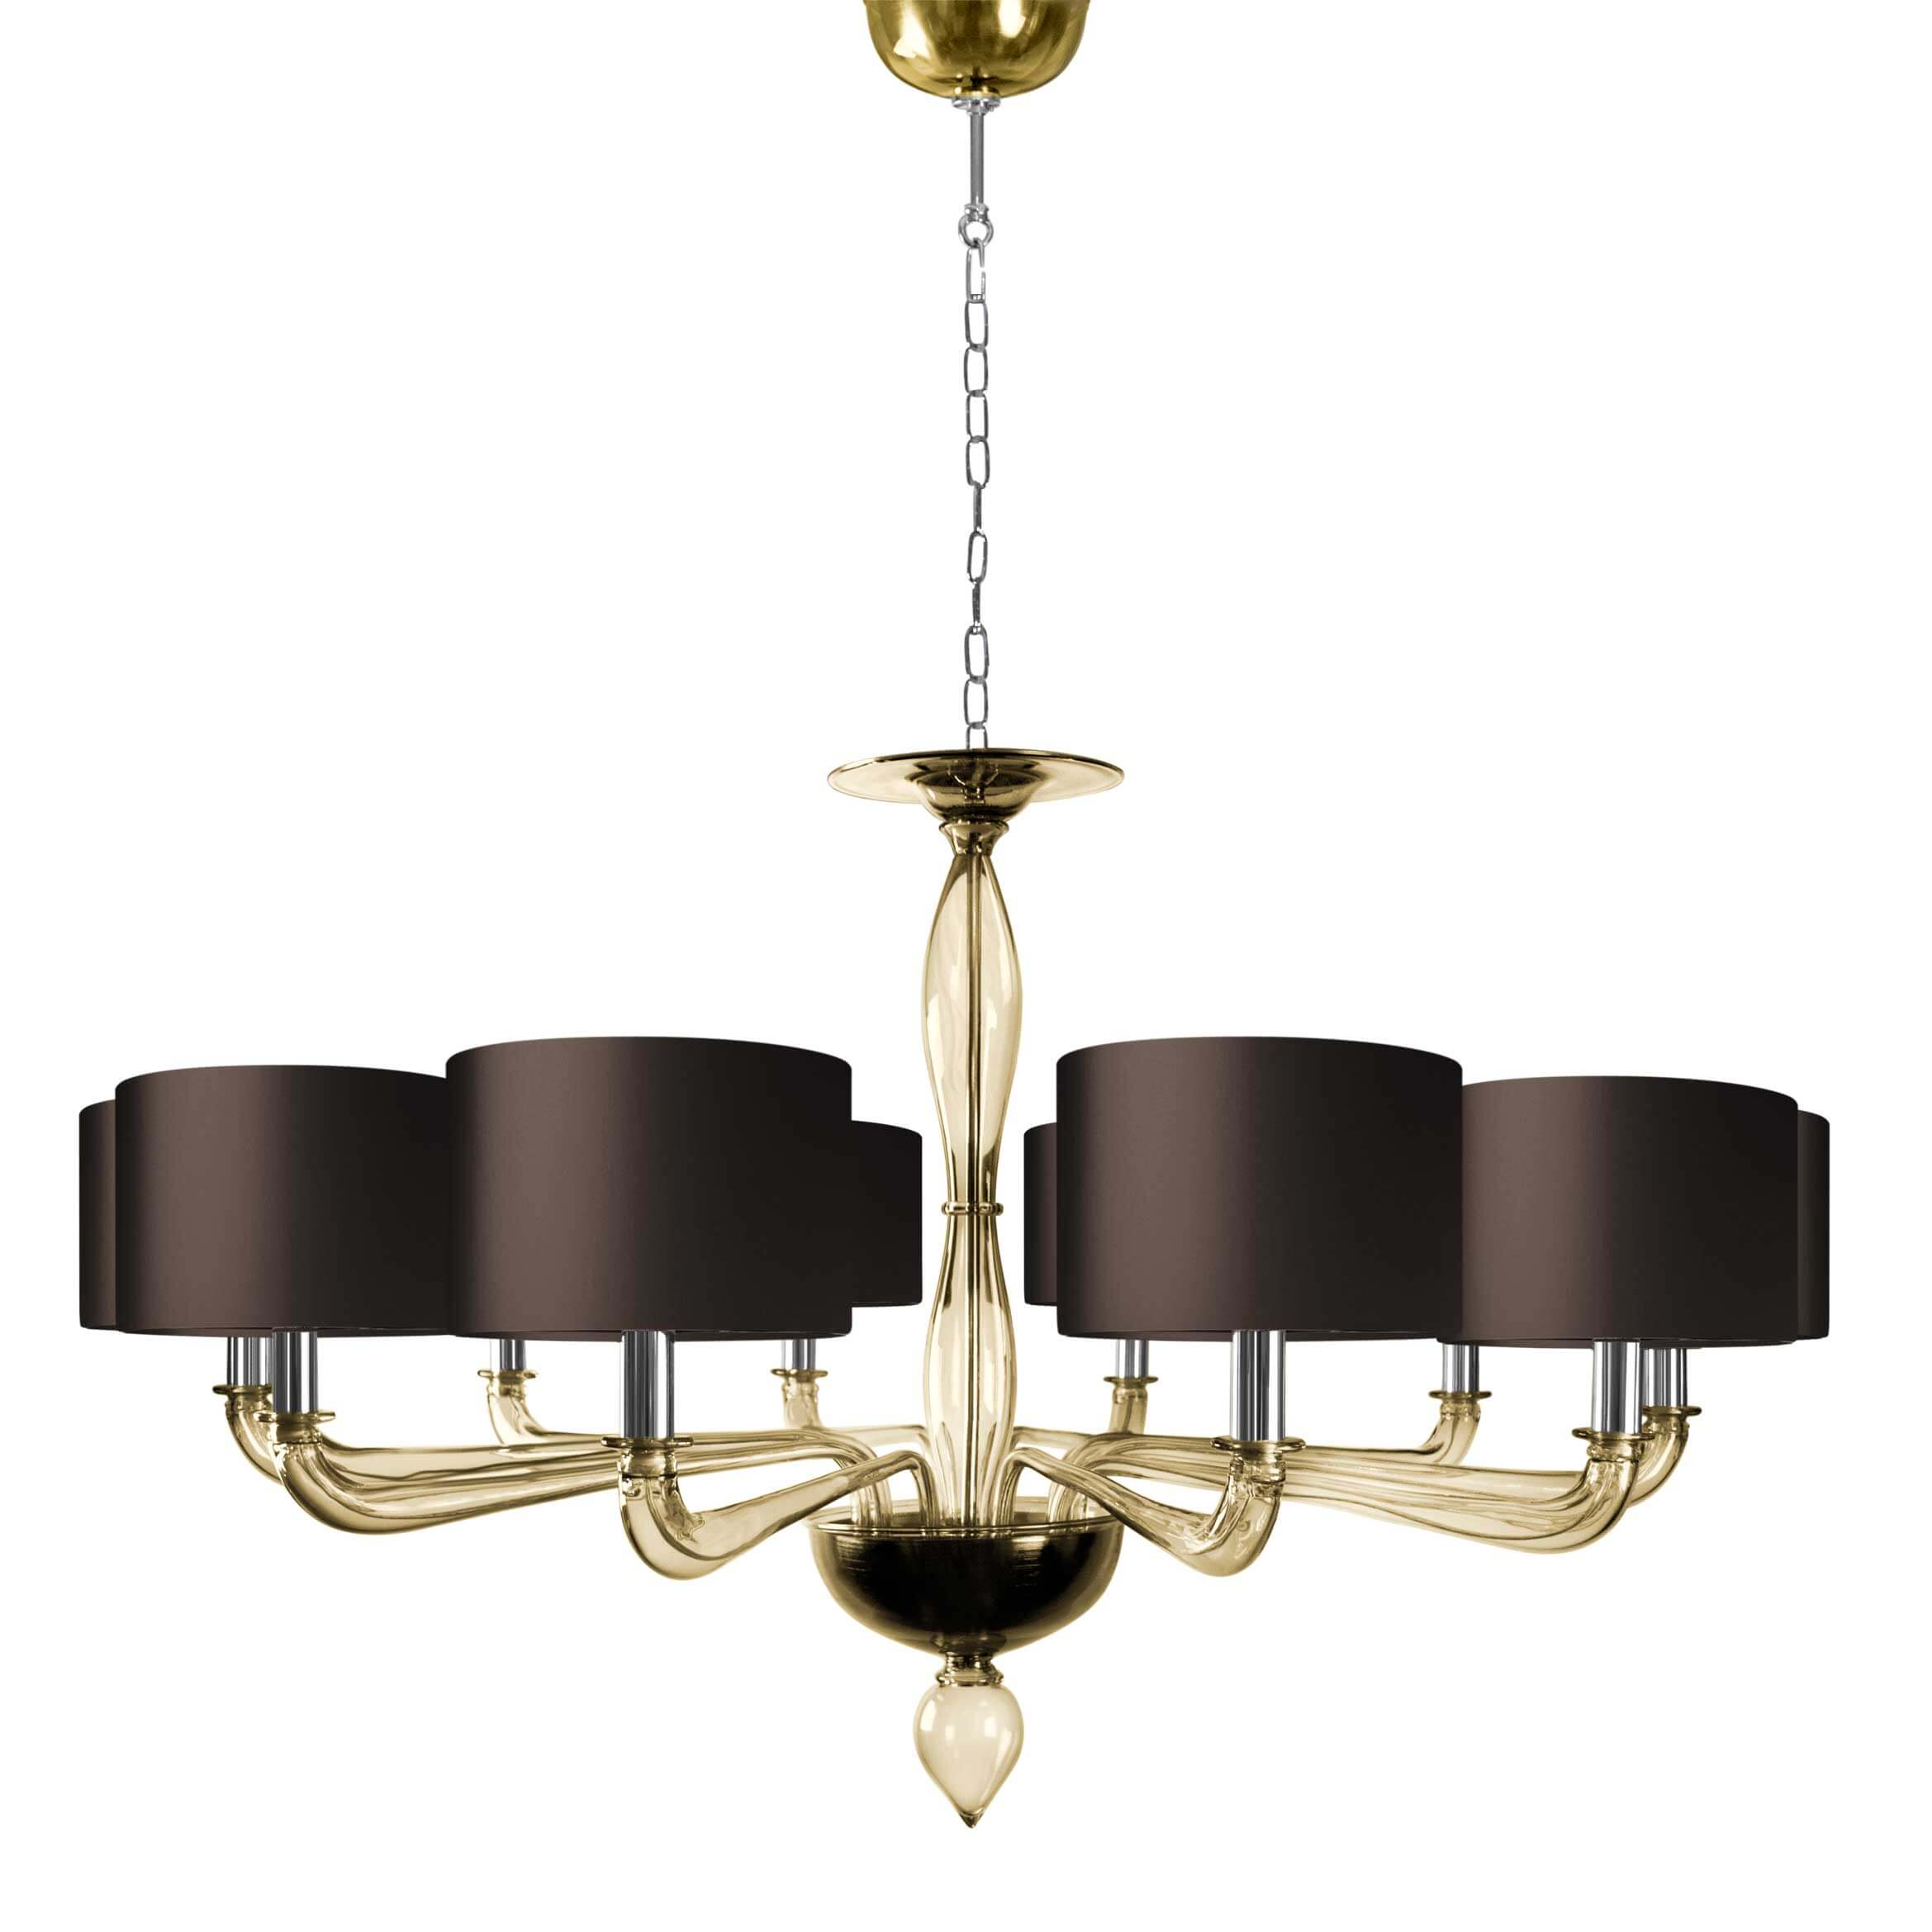 the buy from online shop pinterest chandelier lighting next uk pin